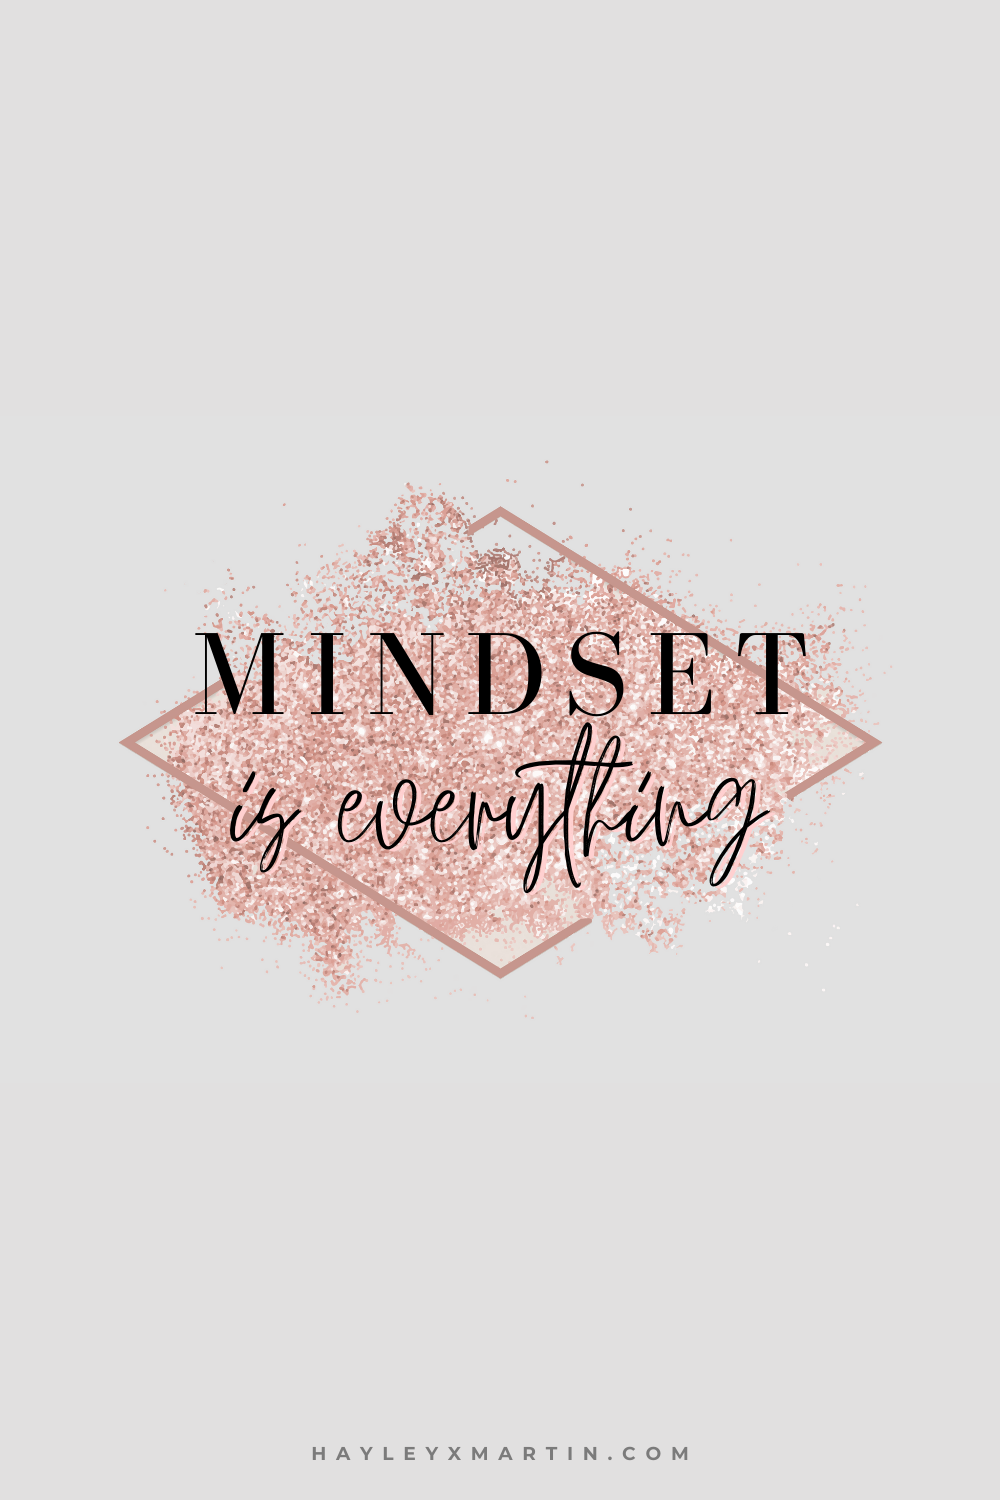 MINDSET IS EVERYTHING | HAYLEYXMARTIN